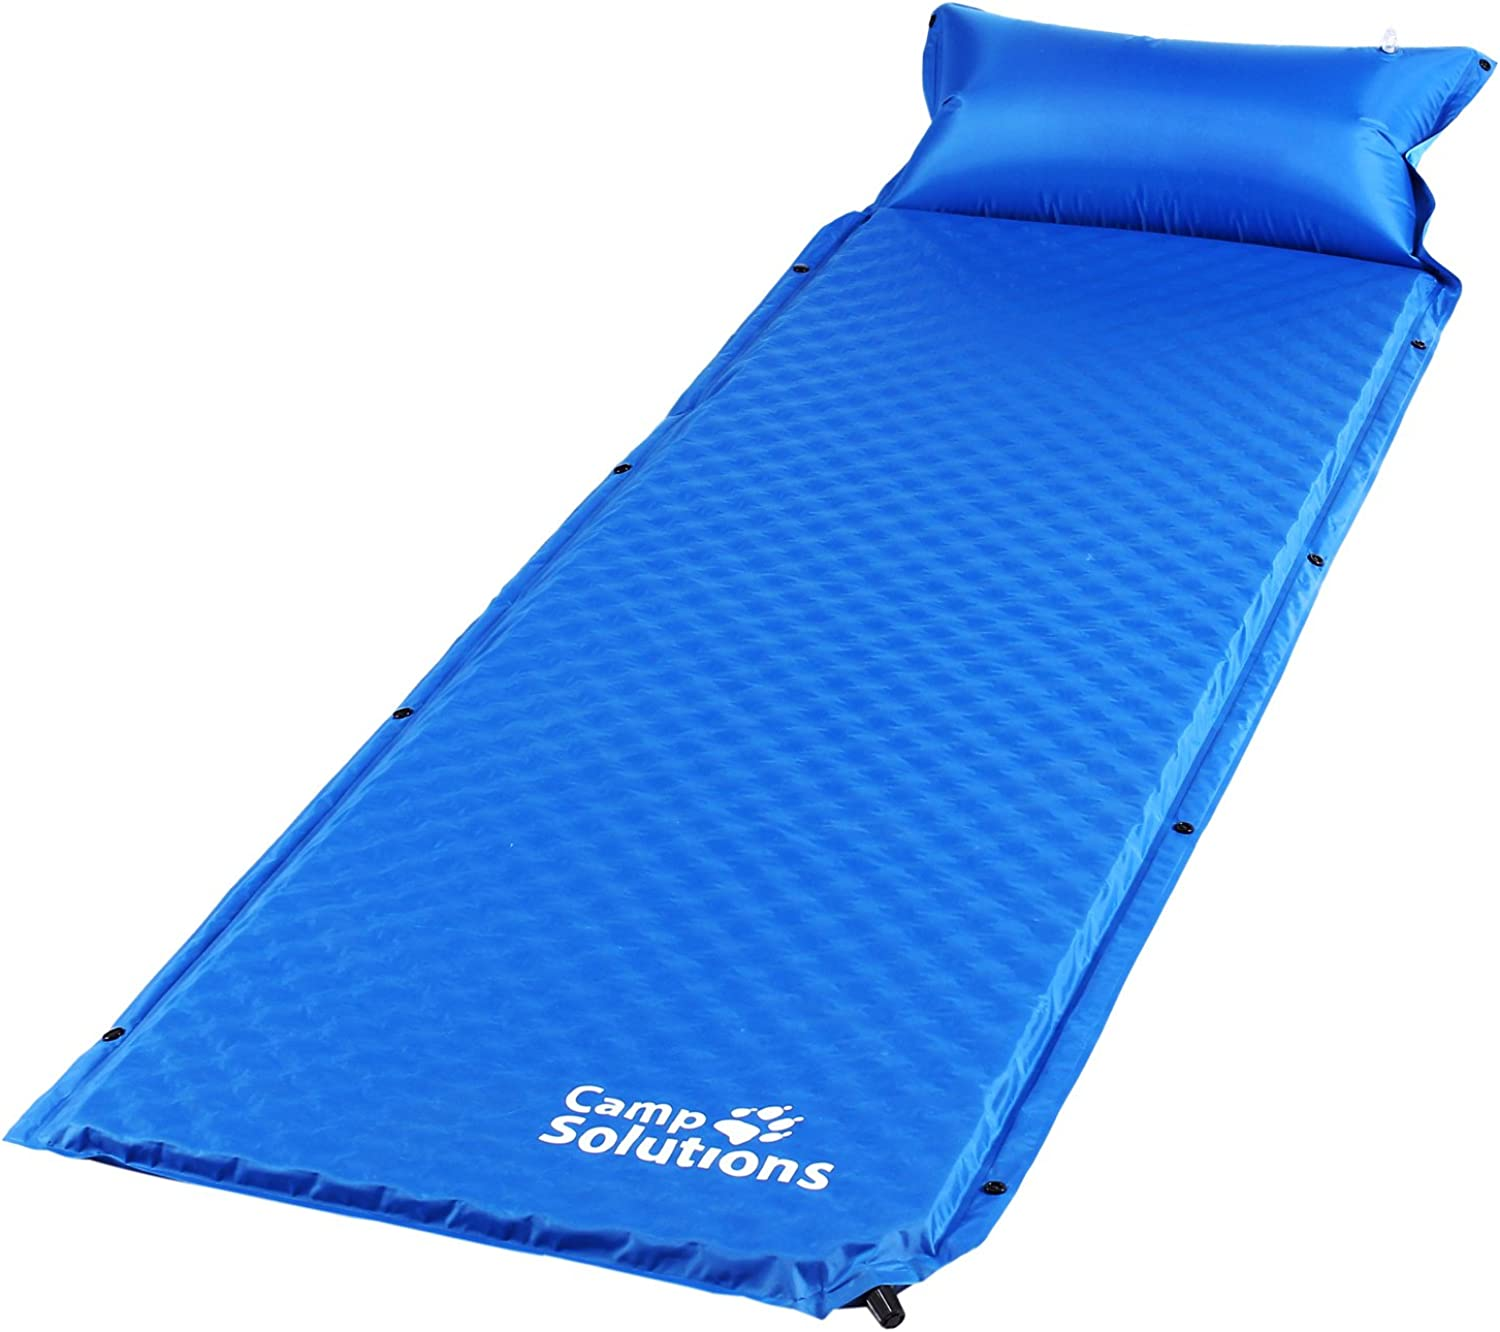 Camp Solutions Sleeping Pad Camping Mattress SelfInflation Sleeping Mats for Family, Attached Pillow